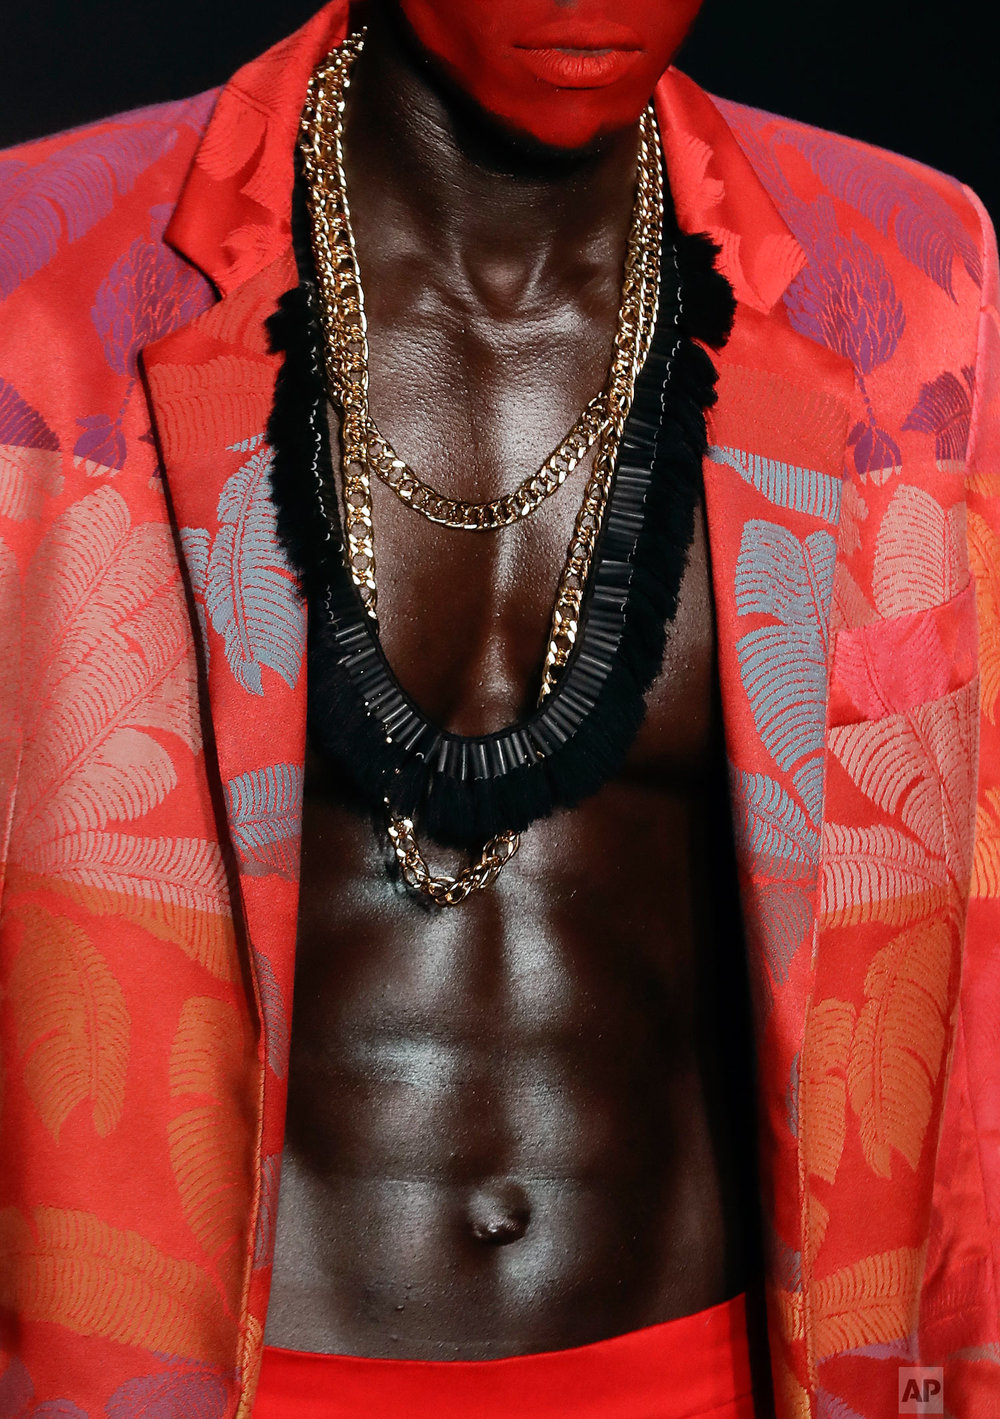 A model wears a creation from the Joao Pimenta collection during Fashion Week in Sao Paulo, Brazil, Oct. 26, 2018. (AP Photo/Andre Penner)